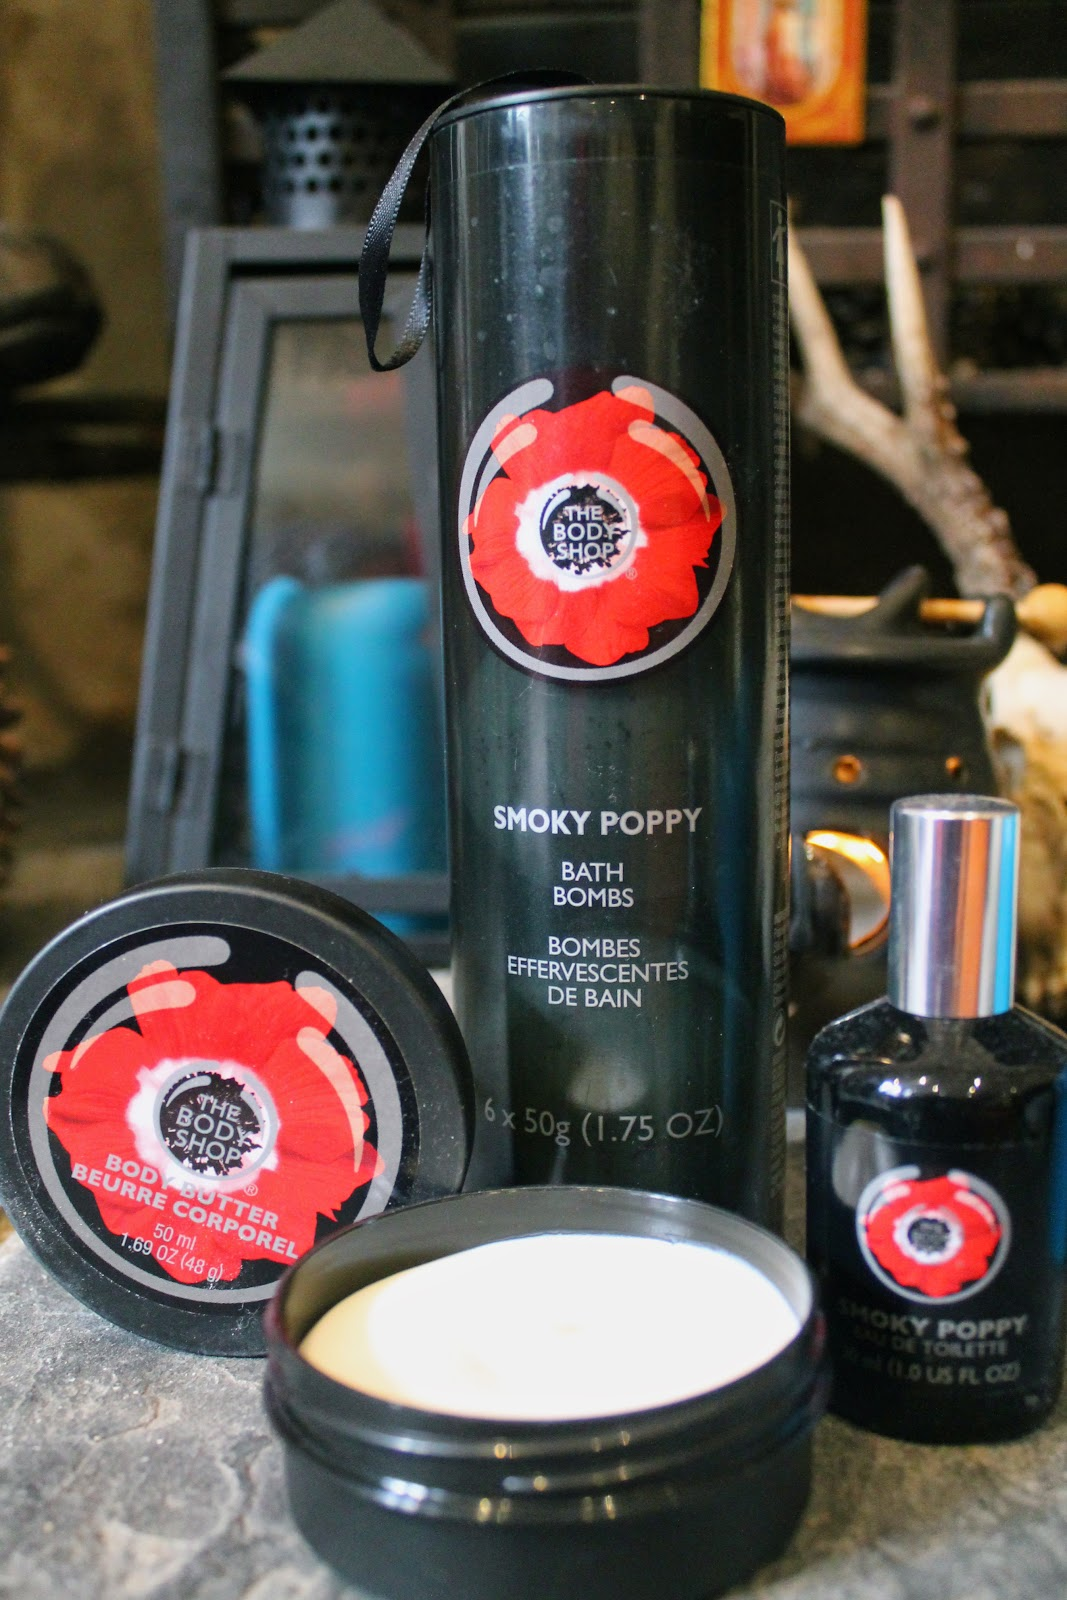 the body shop smoky poppy review uk